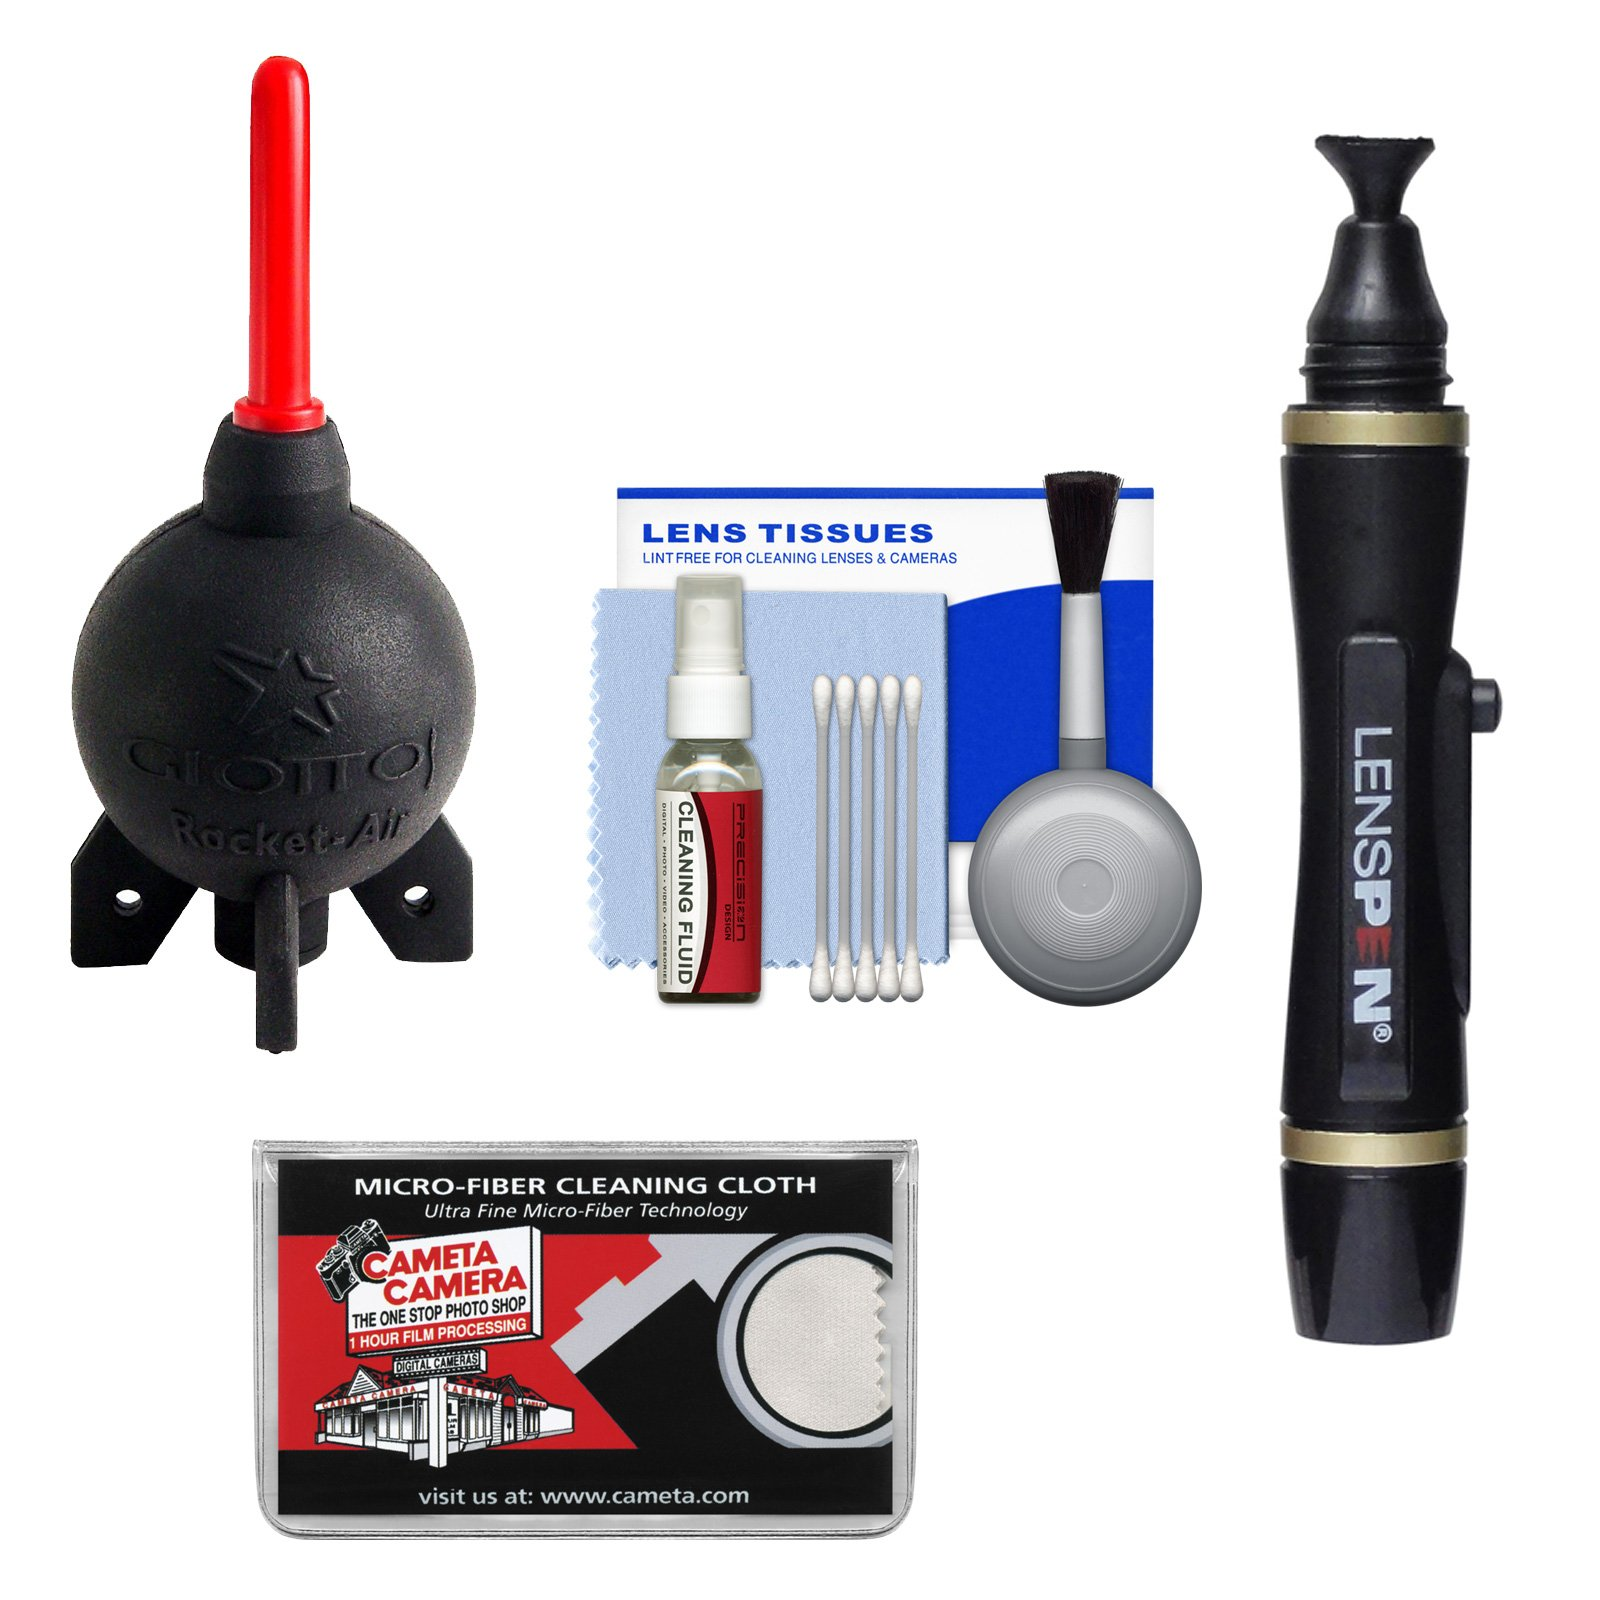 Giottos Rocket-Air Blower Professional AA1920 + Lenspen Lens Pen Cleaning System + Accessory Kit for Canon, Nikon, Olympus, Pentax and Sony Digital SLR Cameras by Giotto's